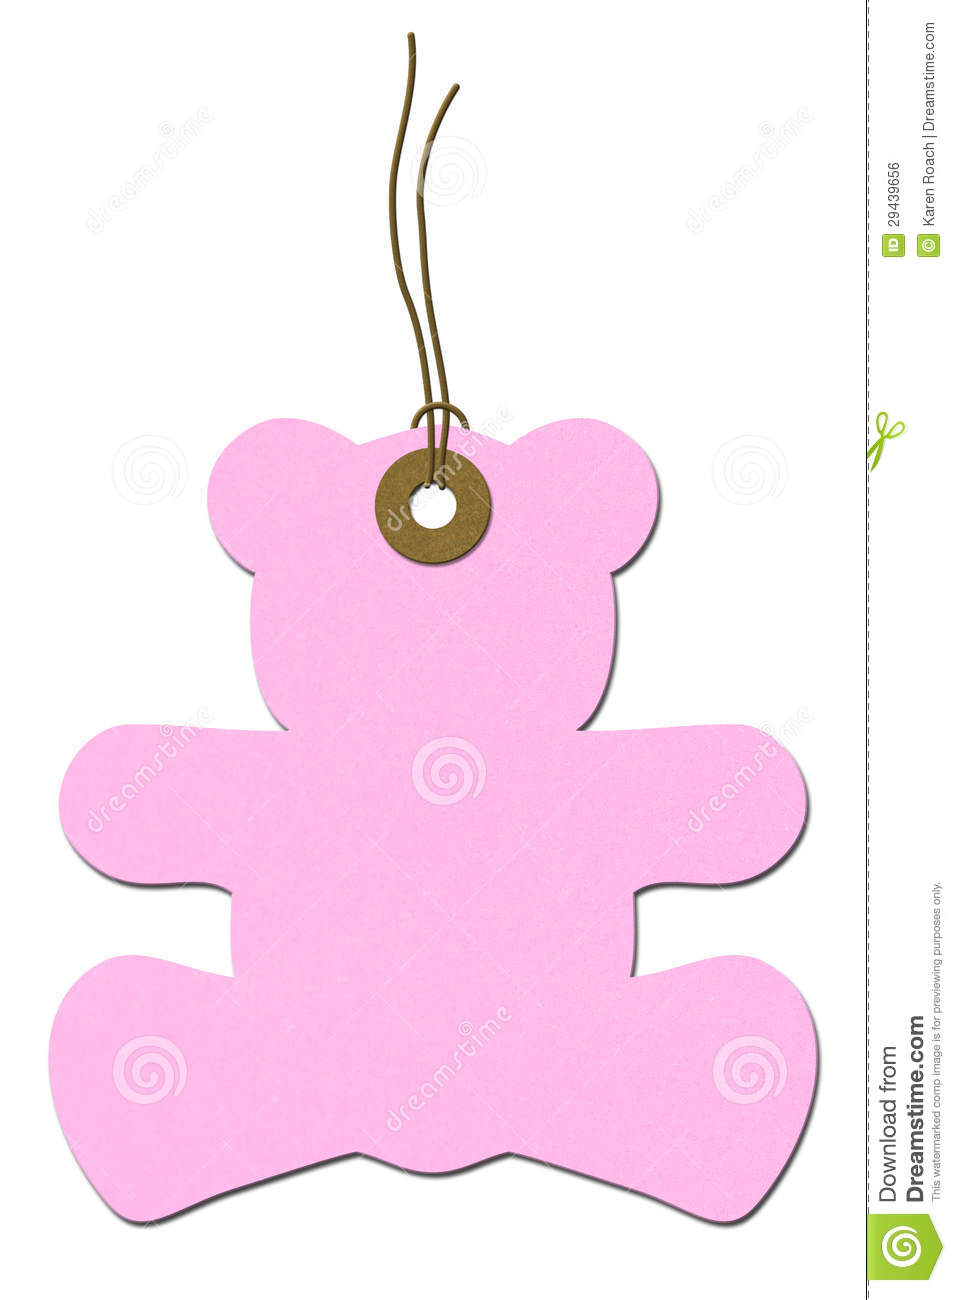 Pink teddy bear baby shower gift tag stock illustration pink teddy bear baby shower gift tag negle Image collections